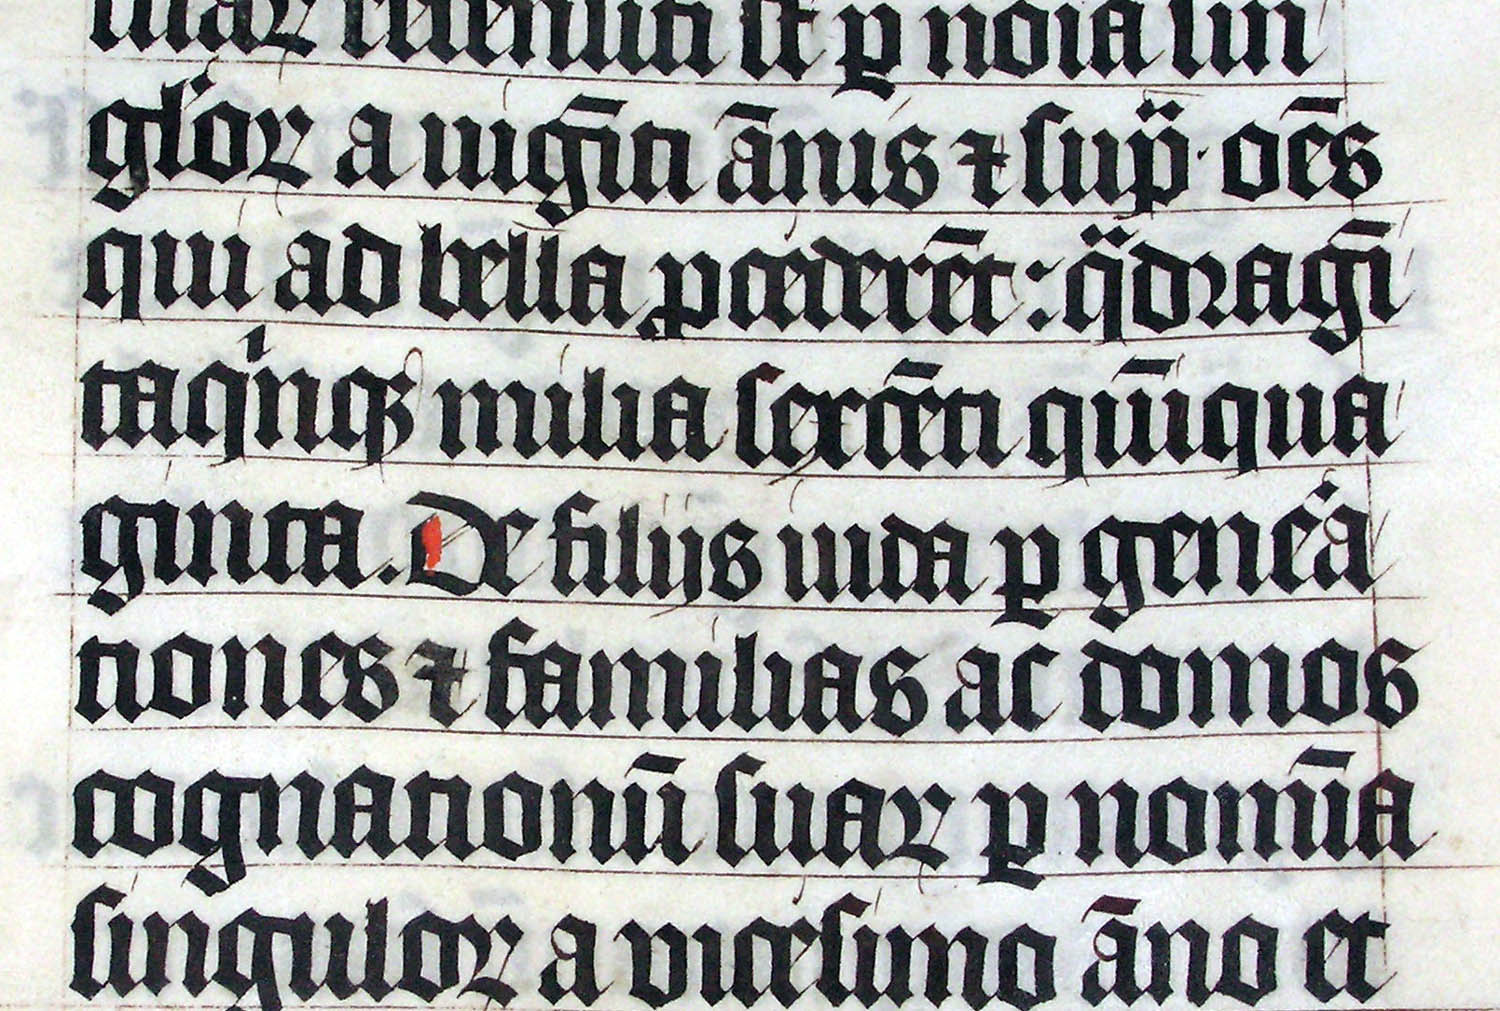 Blackletter bible using the Tironian et, 1407